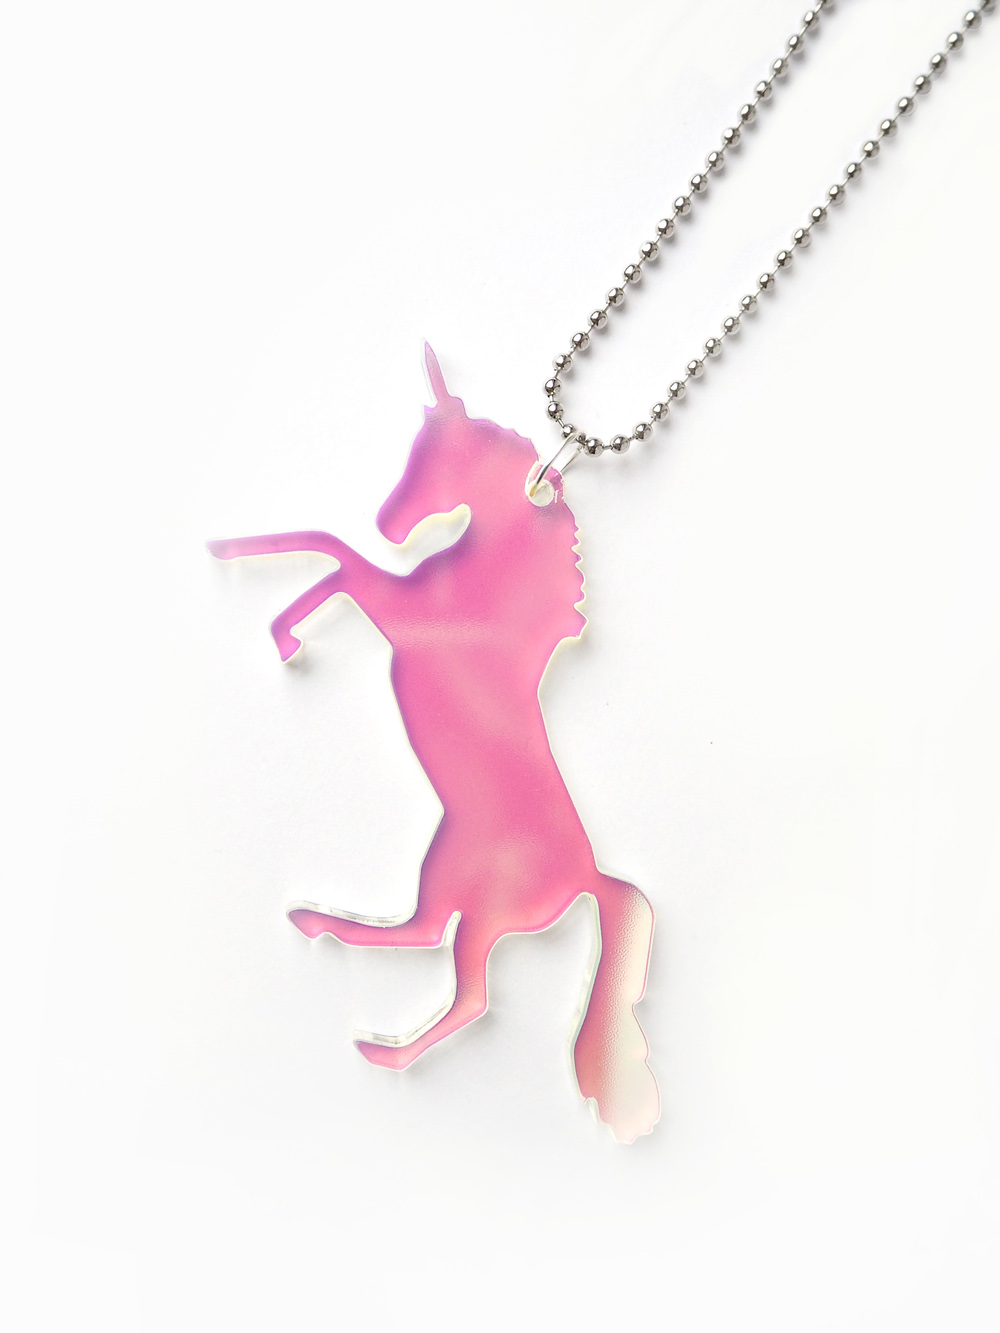 queer af accessories necklace unicorn steer pendant